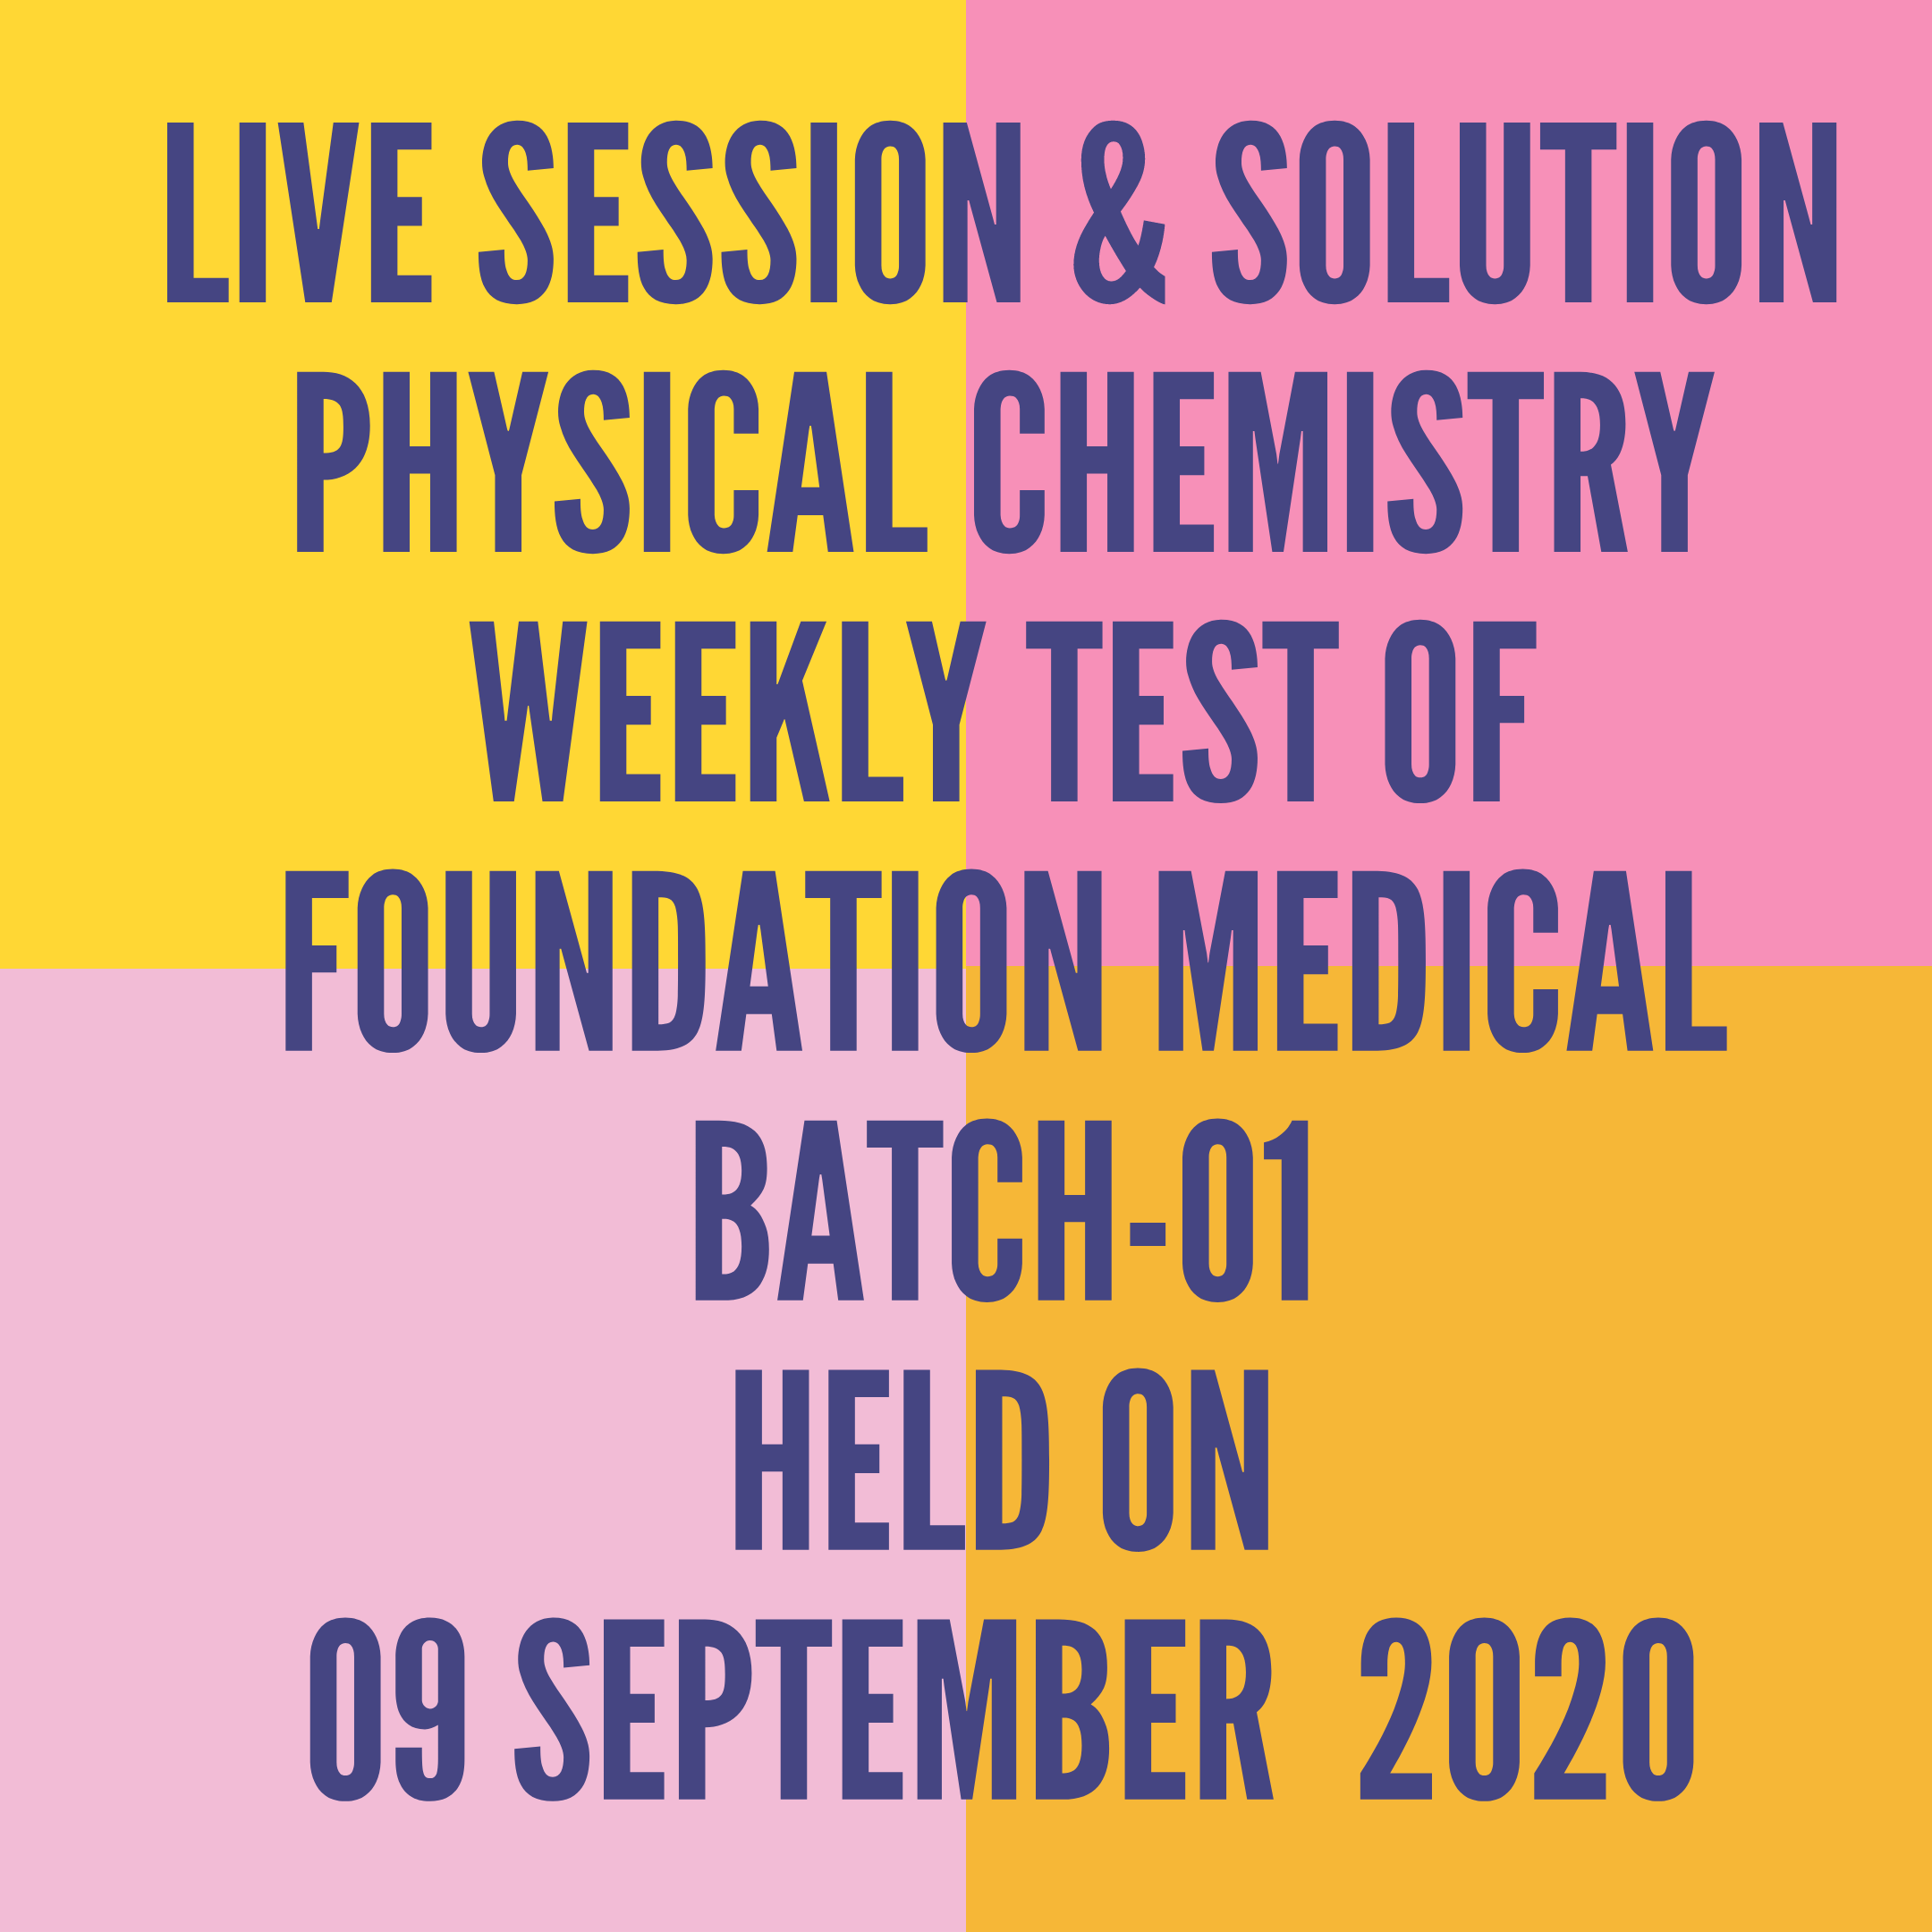 LIVE SESSION & SOLUTION PHYSICAL CHEMISTRY WEEKLY TEST OF FOUNDATION MEDICAL BATCH-01 HELD ON 09 SEPTEMBER  2020